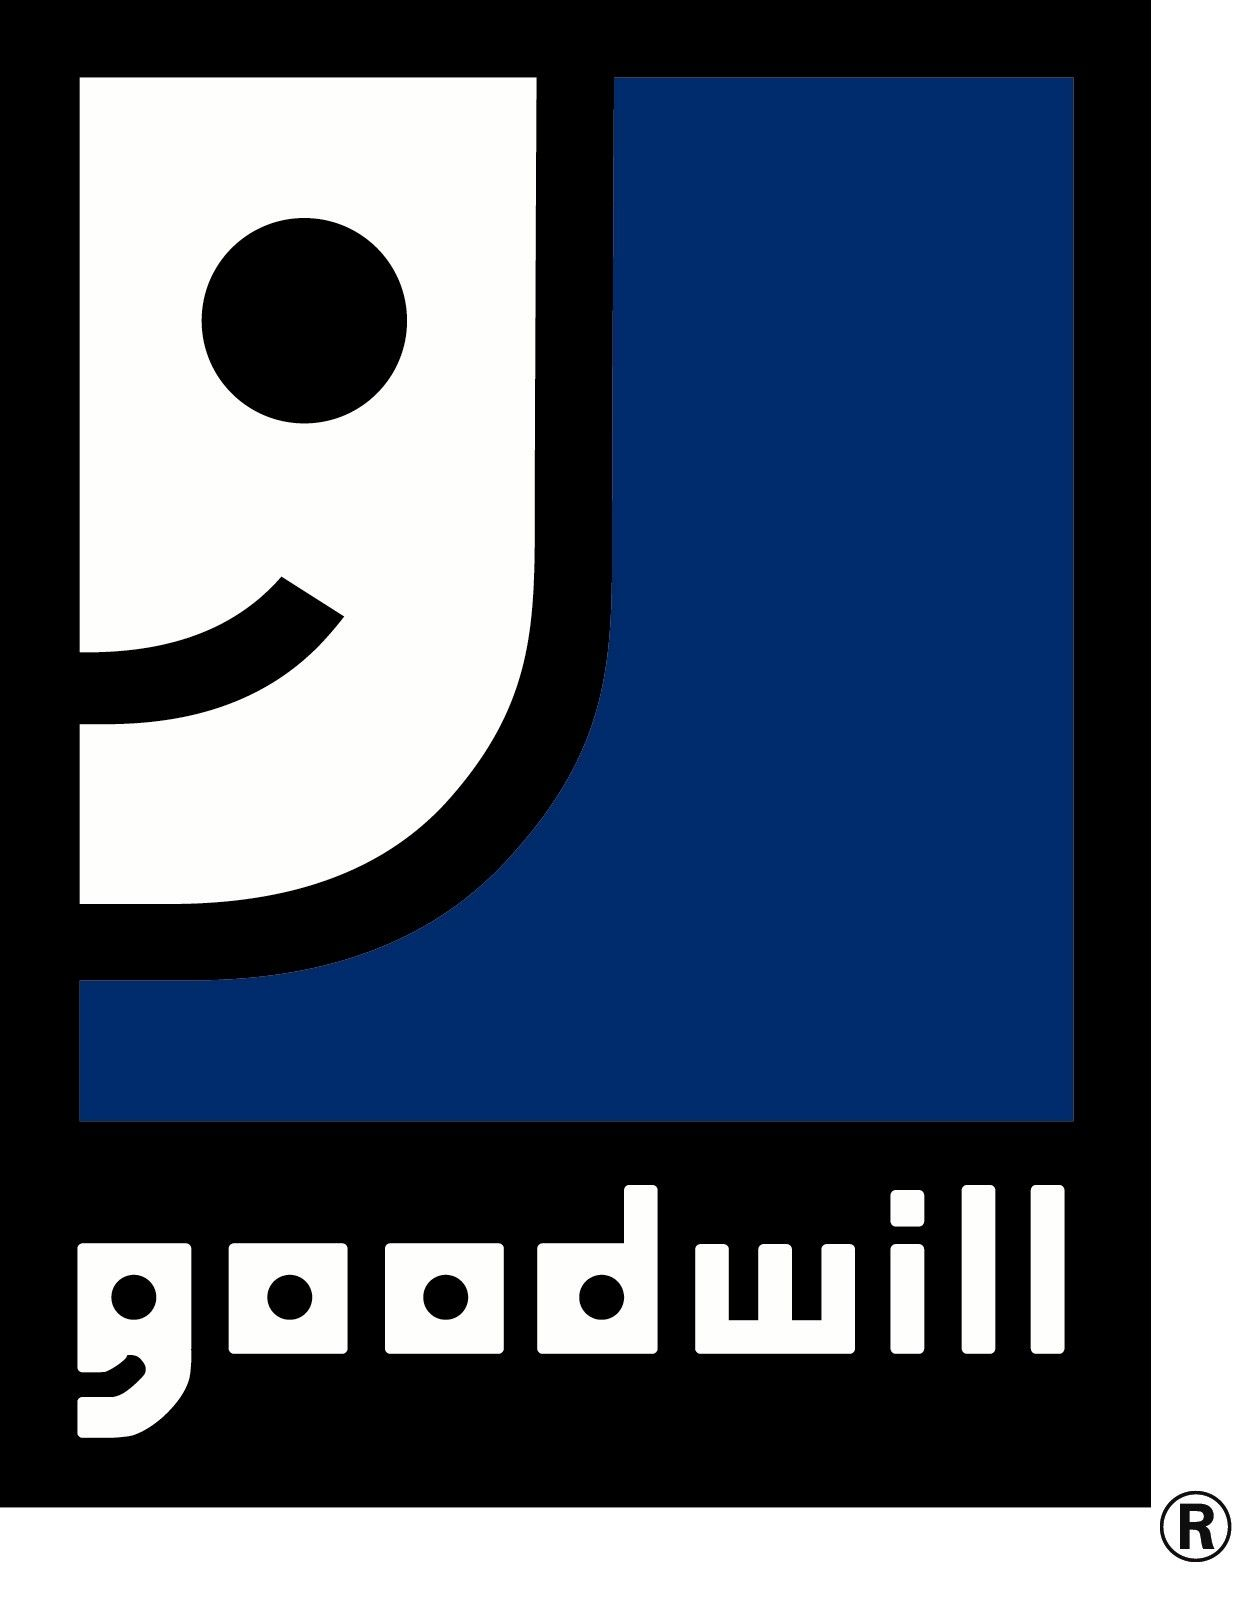 Mers Goodwill Announces New And Improved Hannibal Store